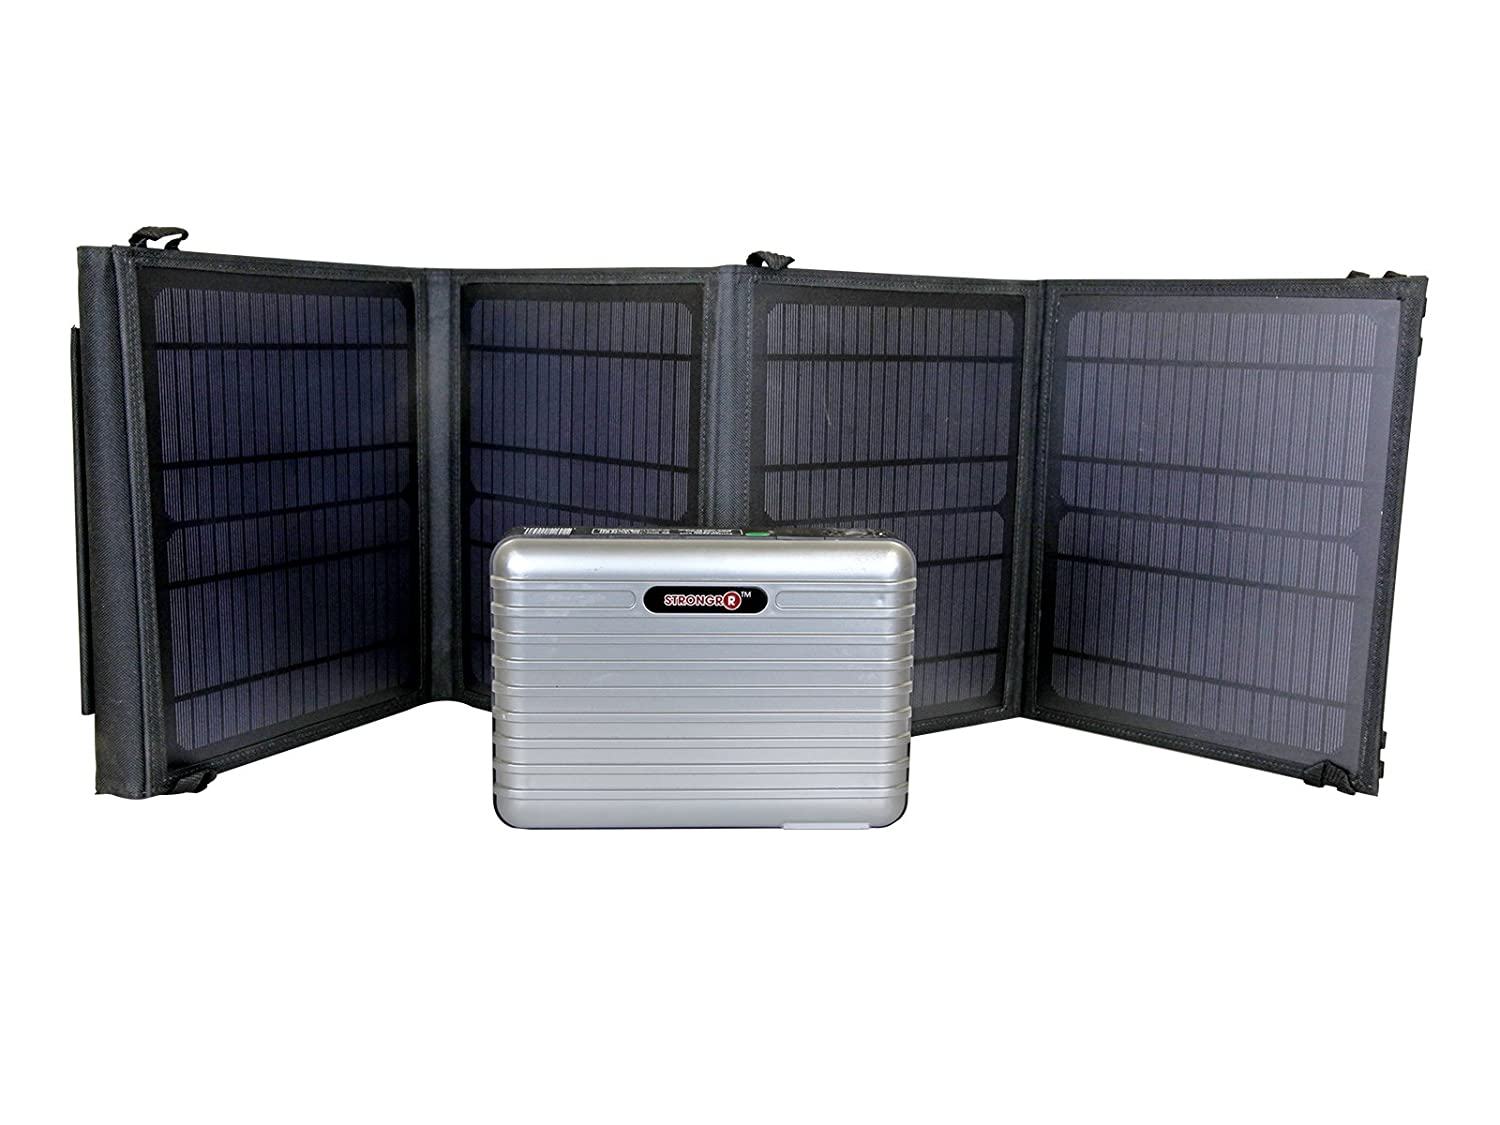 LB1 High Performance PB160 Solar Generator Kit Review